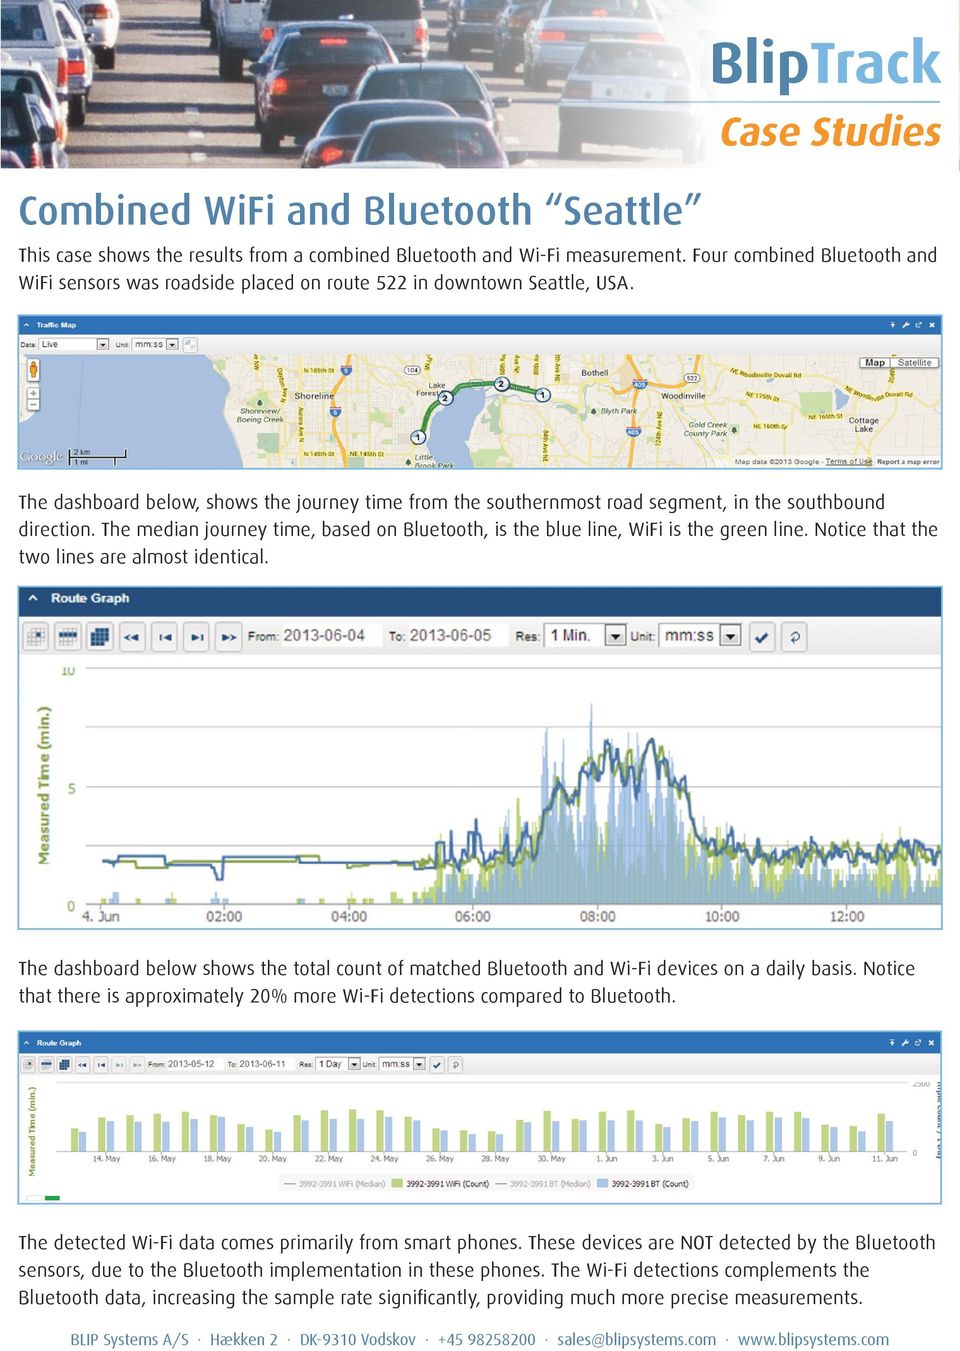 The dashboard below, shows the journey time from the southernmost road segment, in the southbound direction. The median journey time, based on Bluetooth, is the blue line, WiFi is the green line.